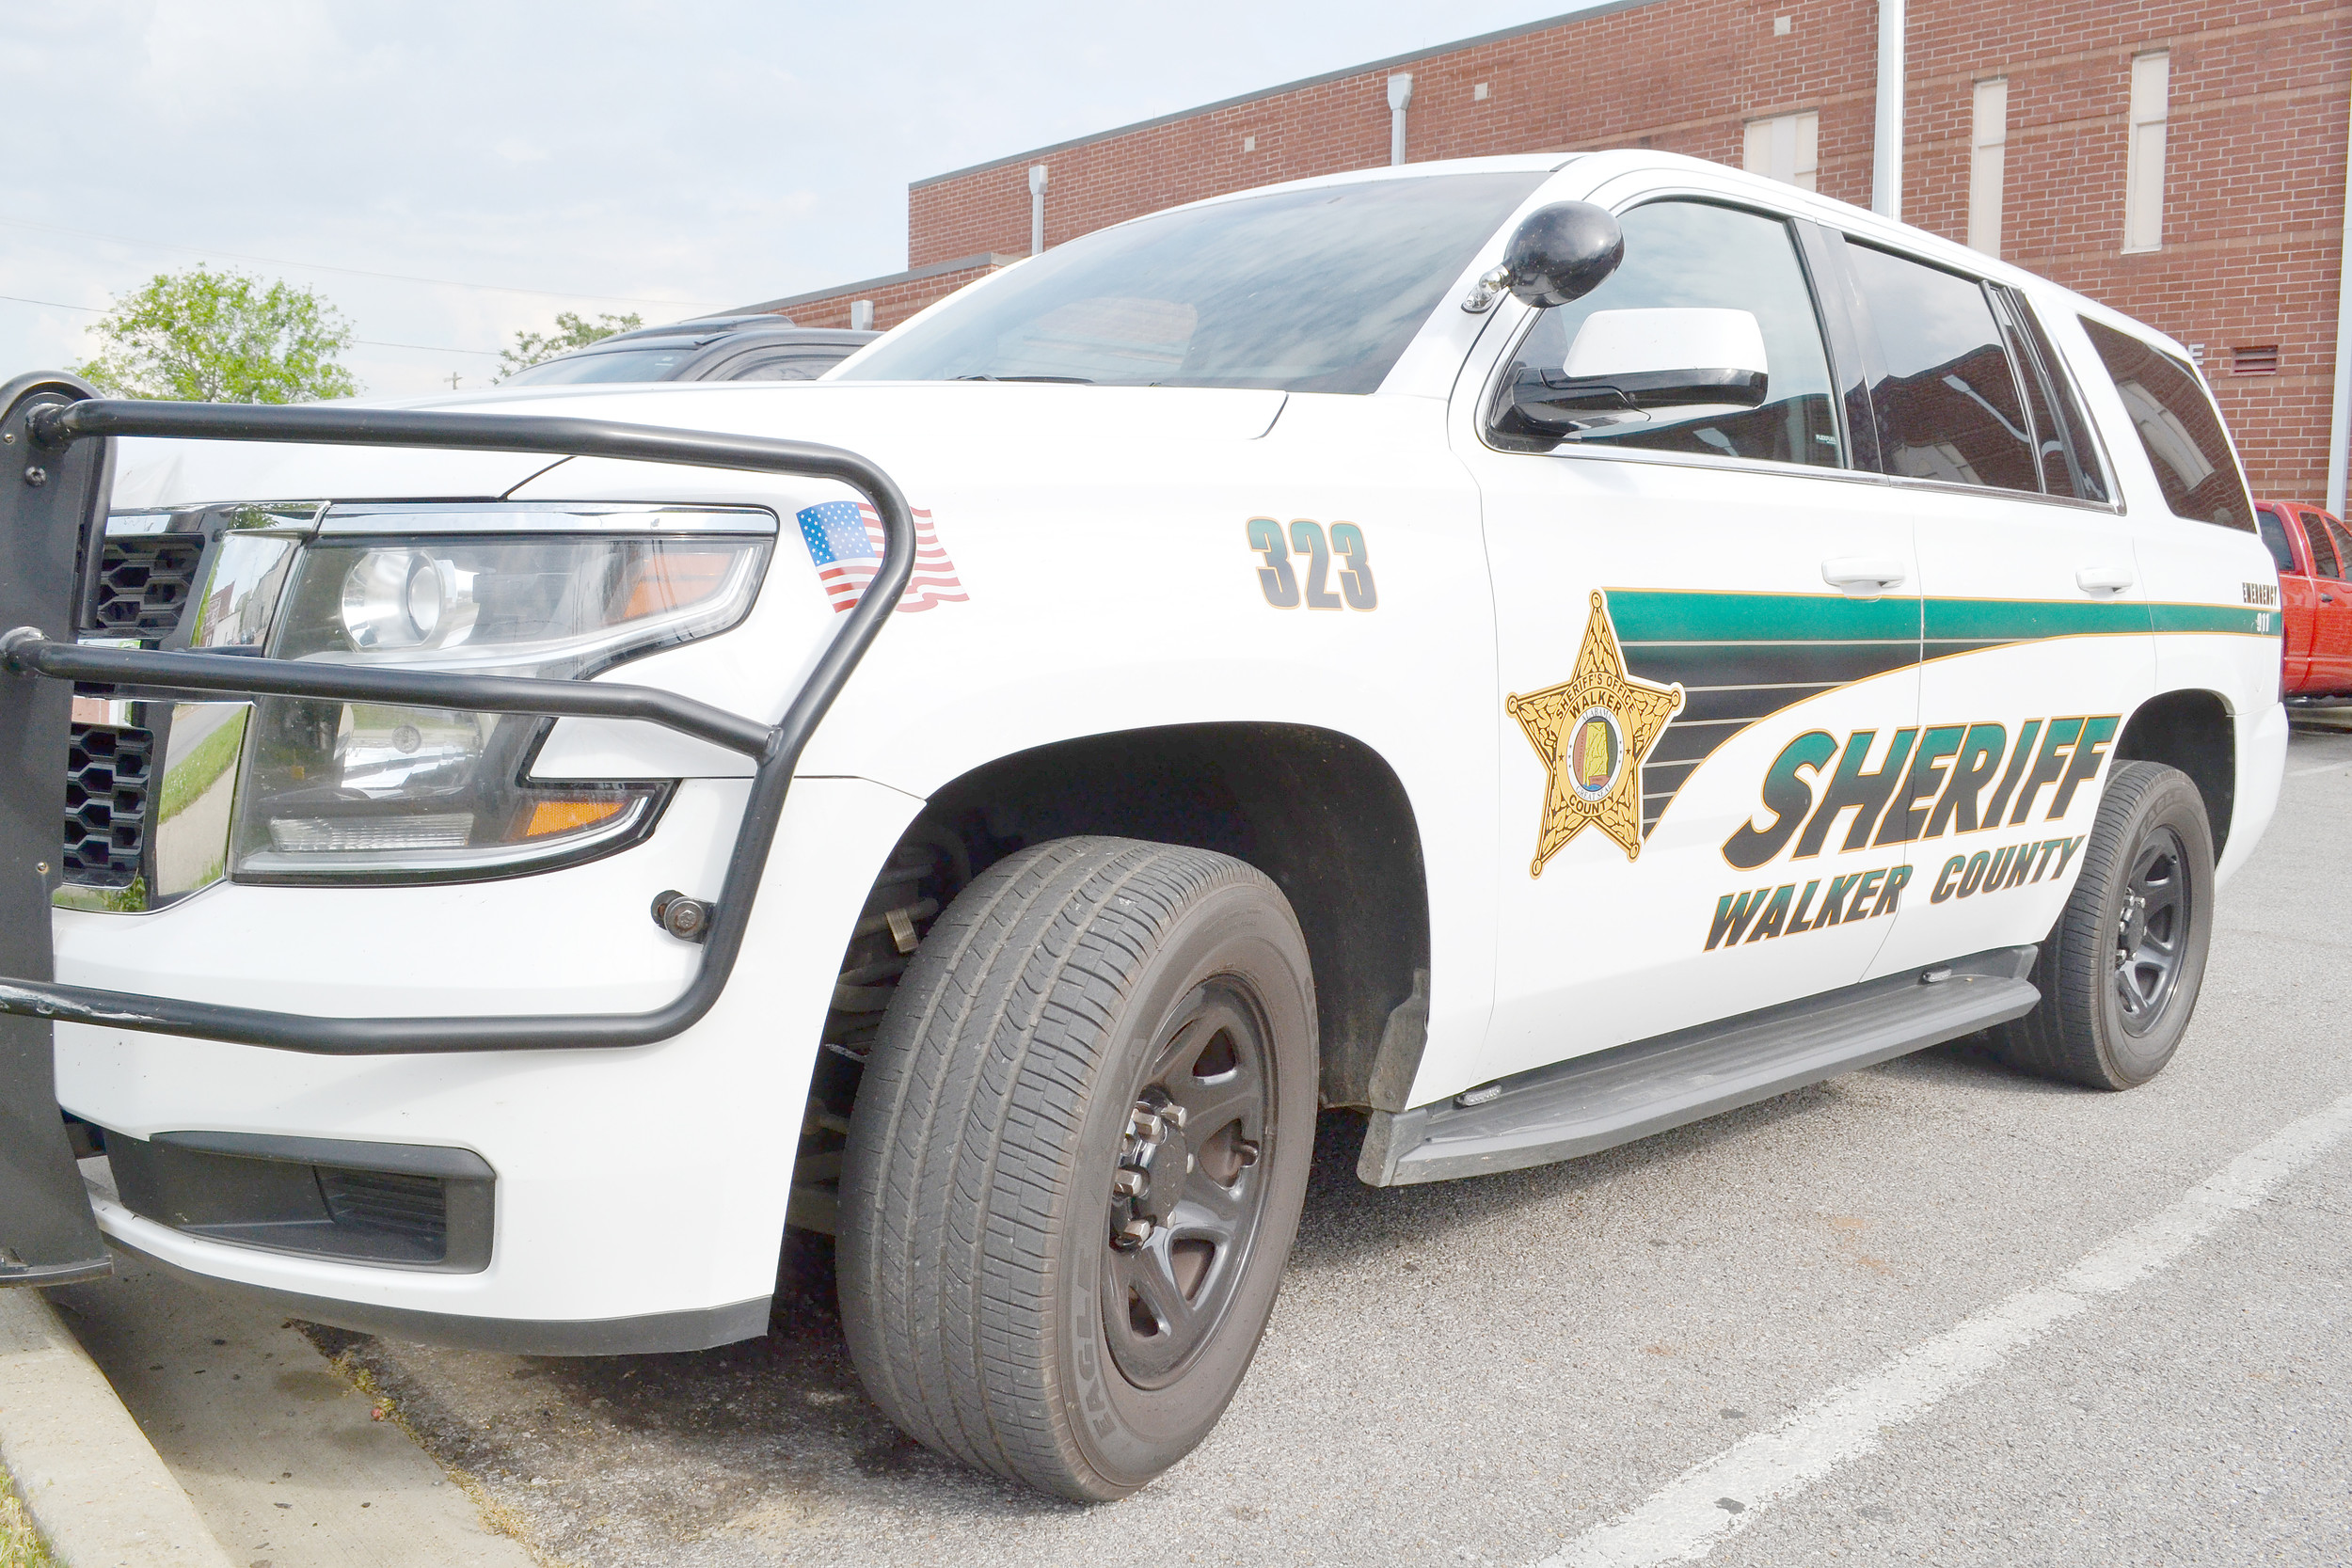 The Walker County Sheriff's Department is now patrolling more on Empire Road and issuing tickets, thanks, in part, to encouragement from the community and new radar guns obtained by the department. However, manpower problems in the department remain. Daily Mountain Eagle - Ed Howell